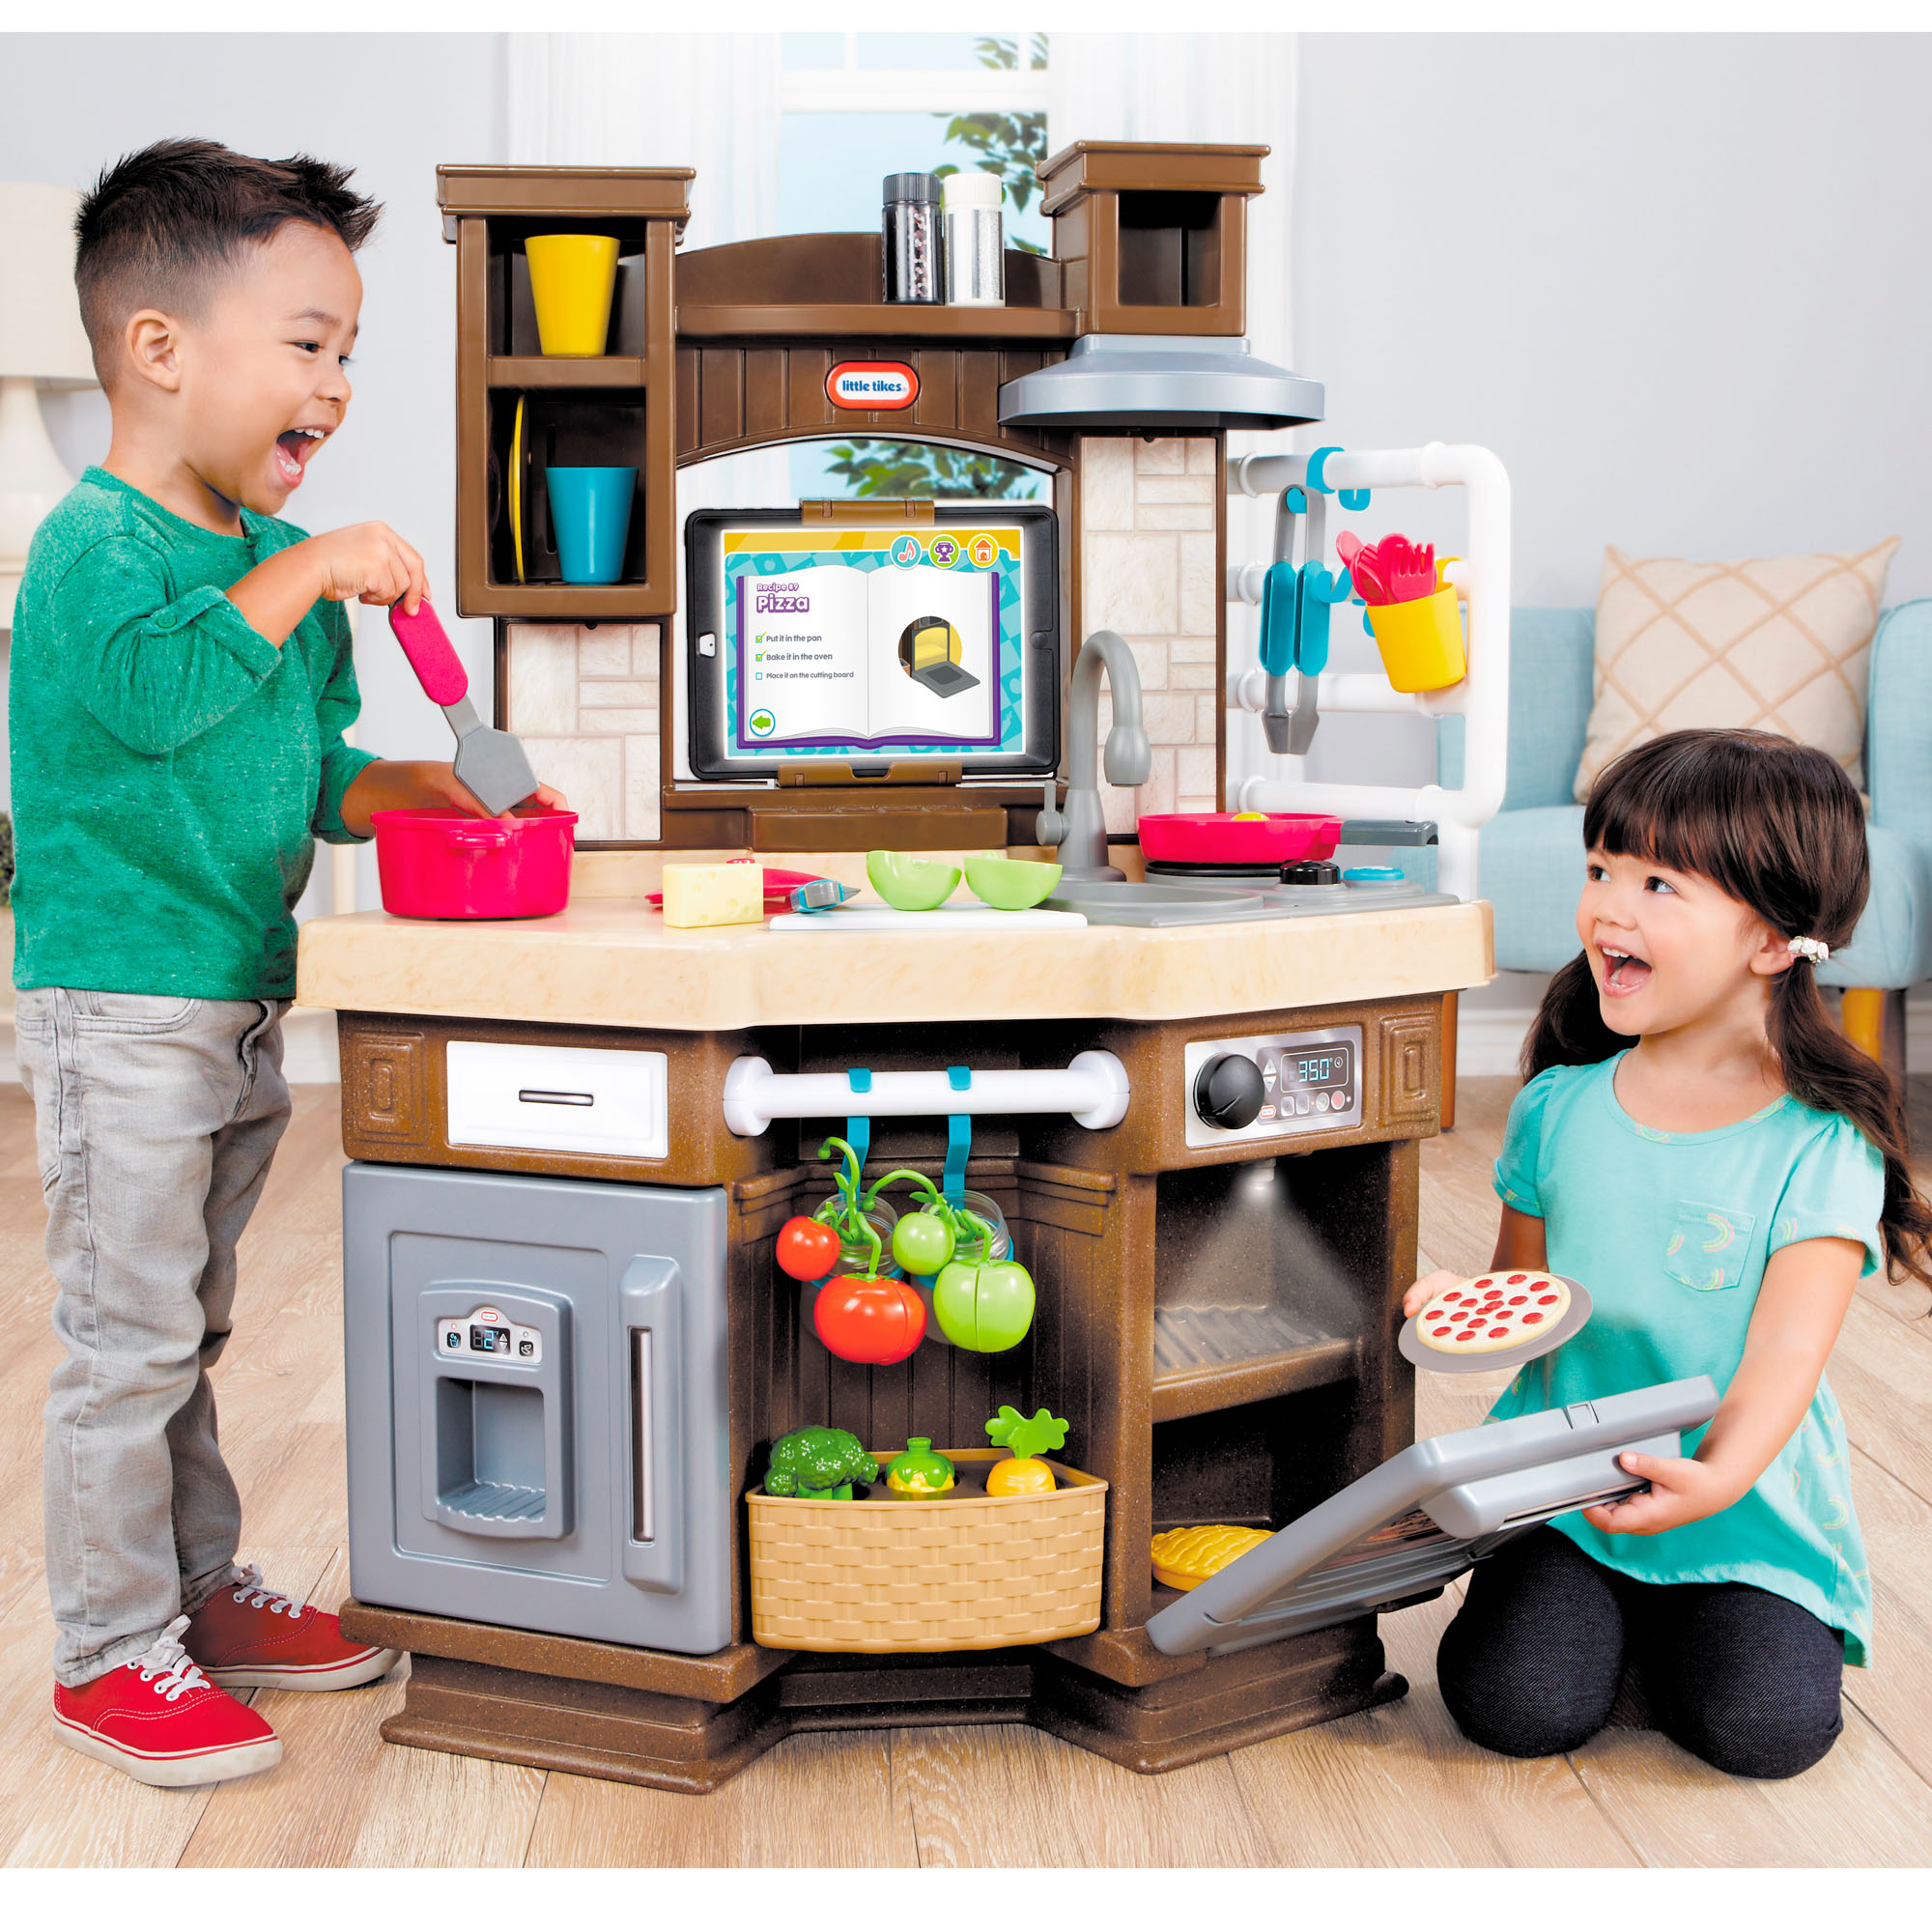 Little Tikes Cook \'n Learn Smart Play Kitchen with 40+ Piece Accessory Set  and 4 Play Modes - Walmart.com